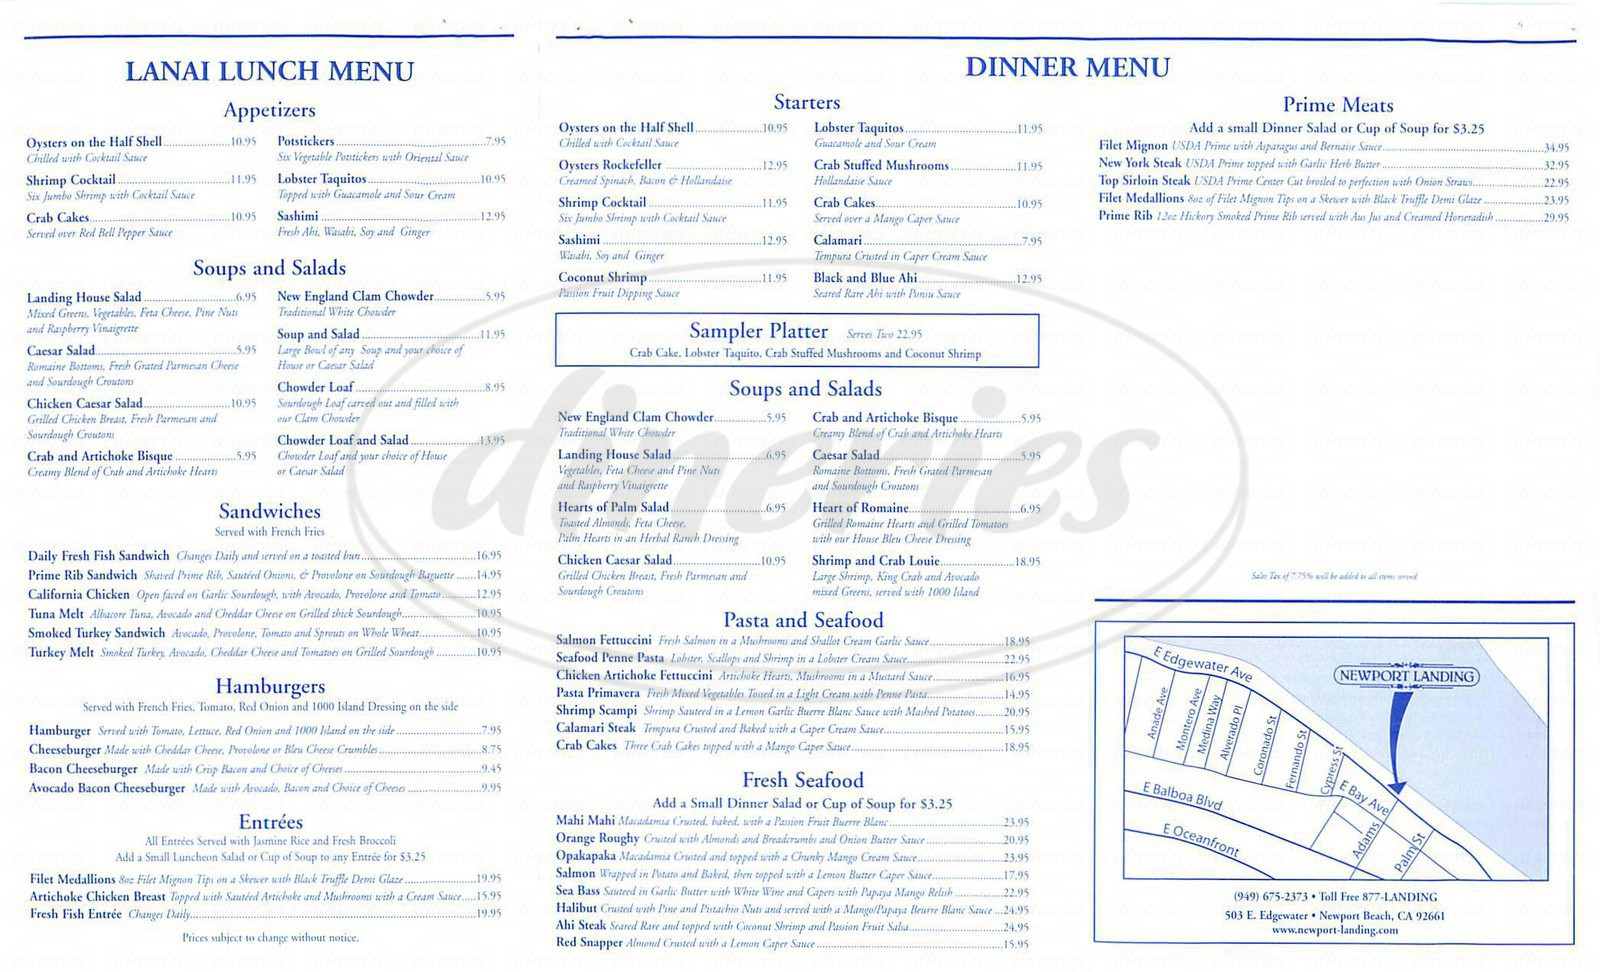 menu for Newport Landing Restaurant